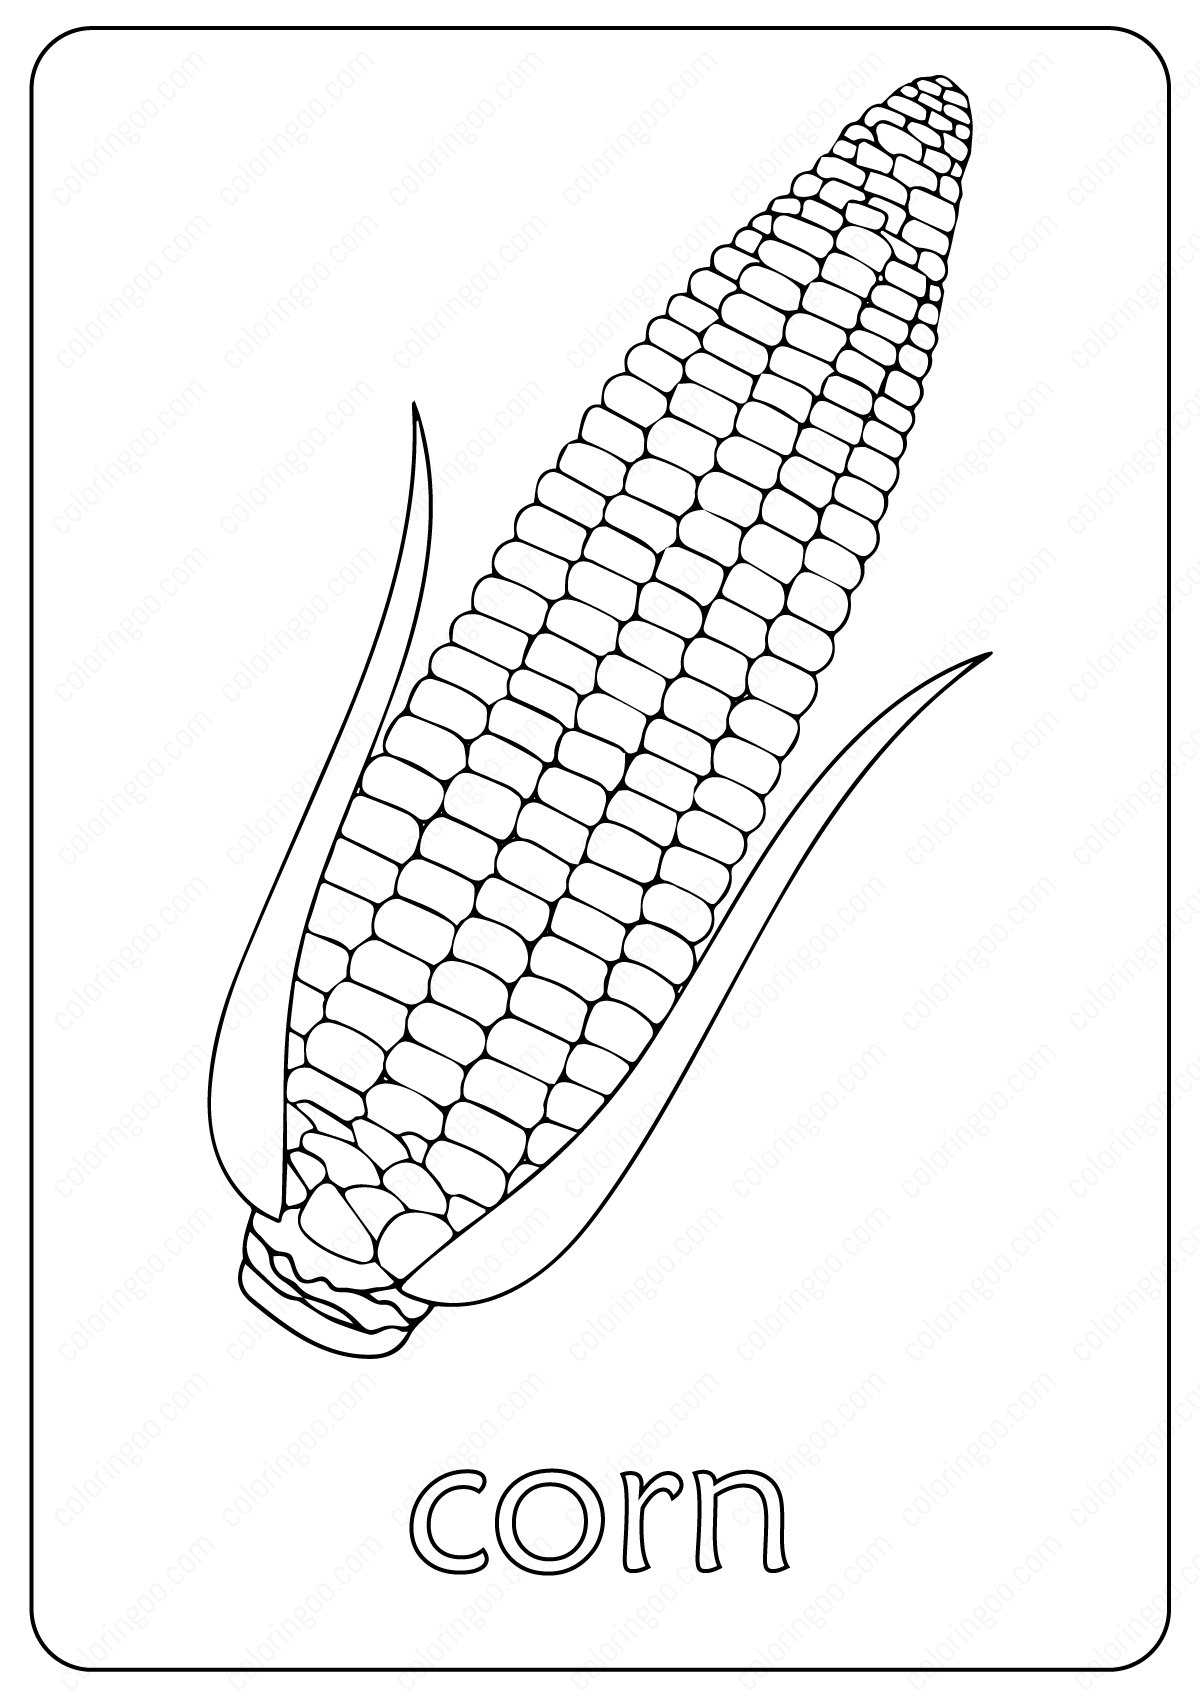 Free Printable Corn Maize Coloring Pages (With images ...